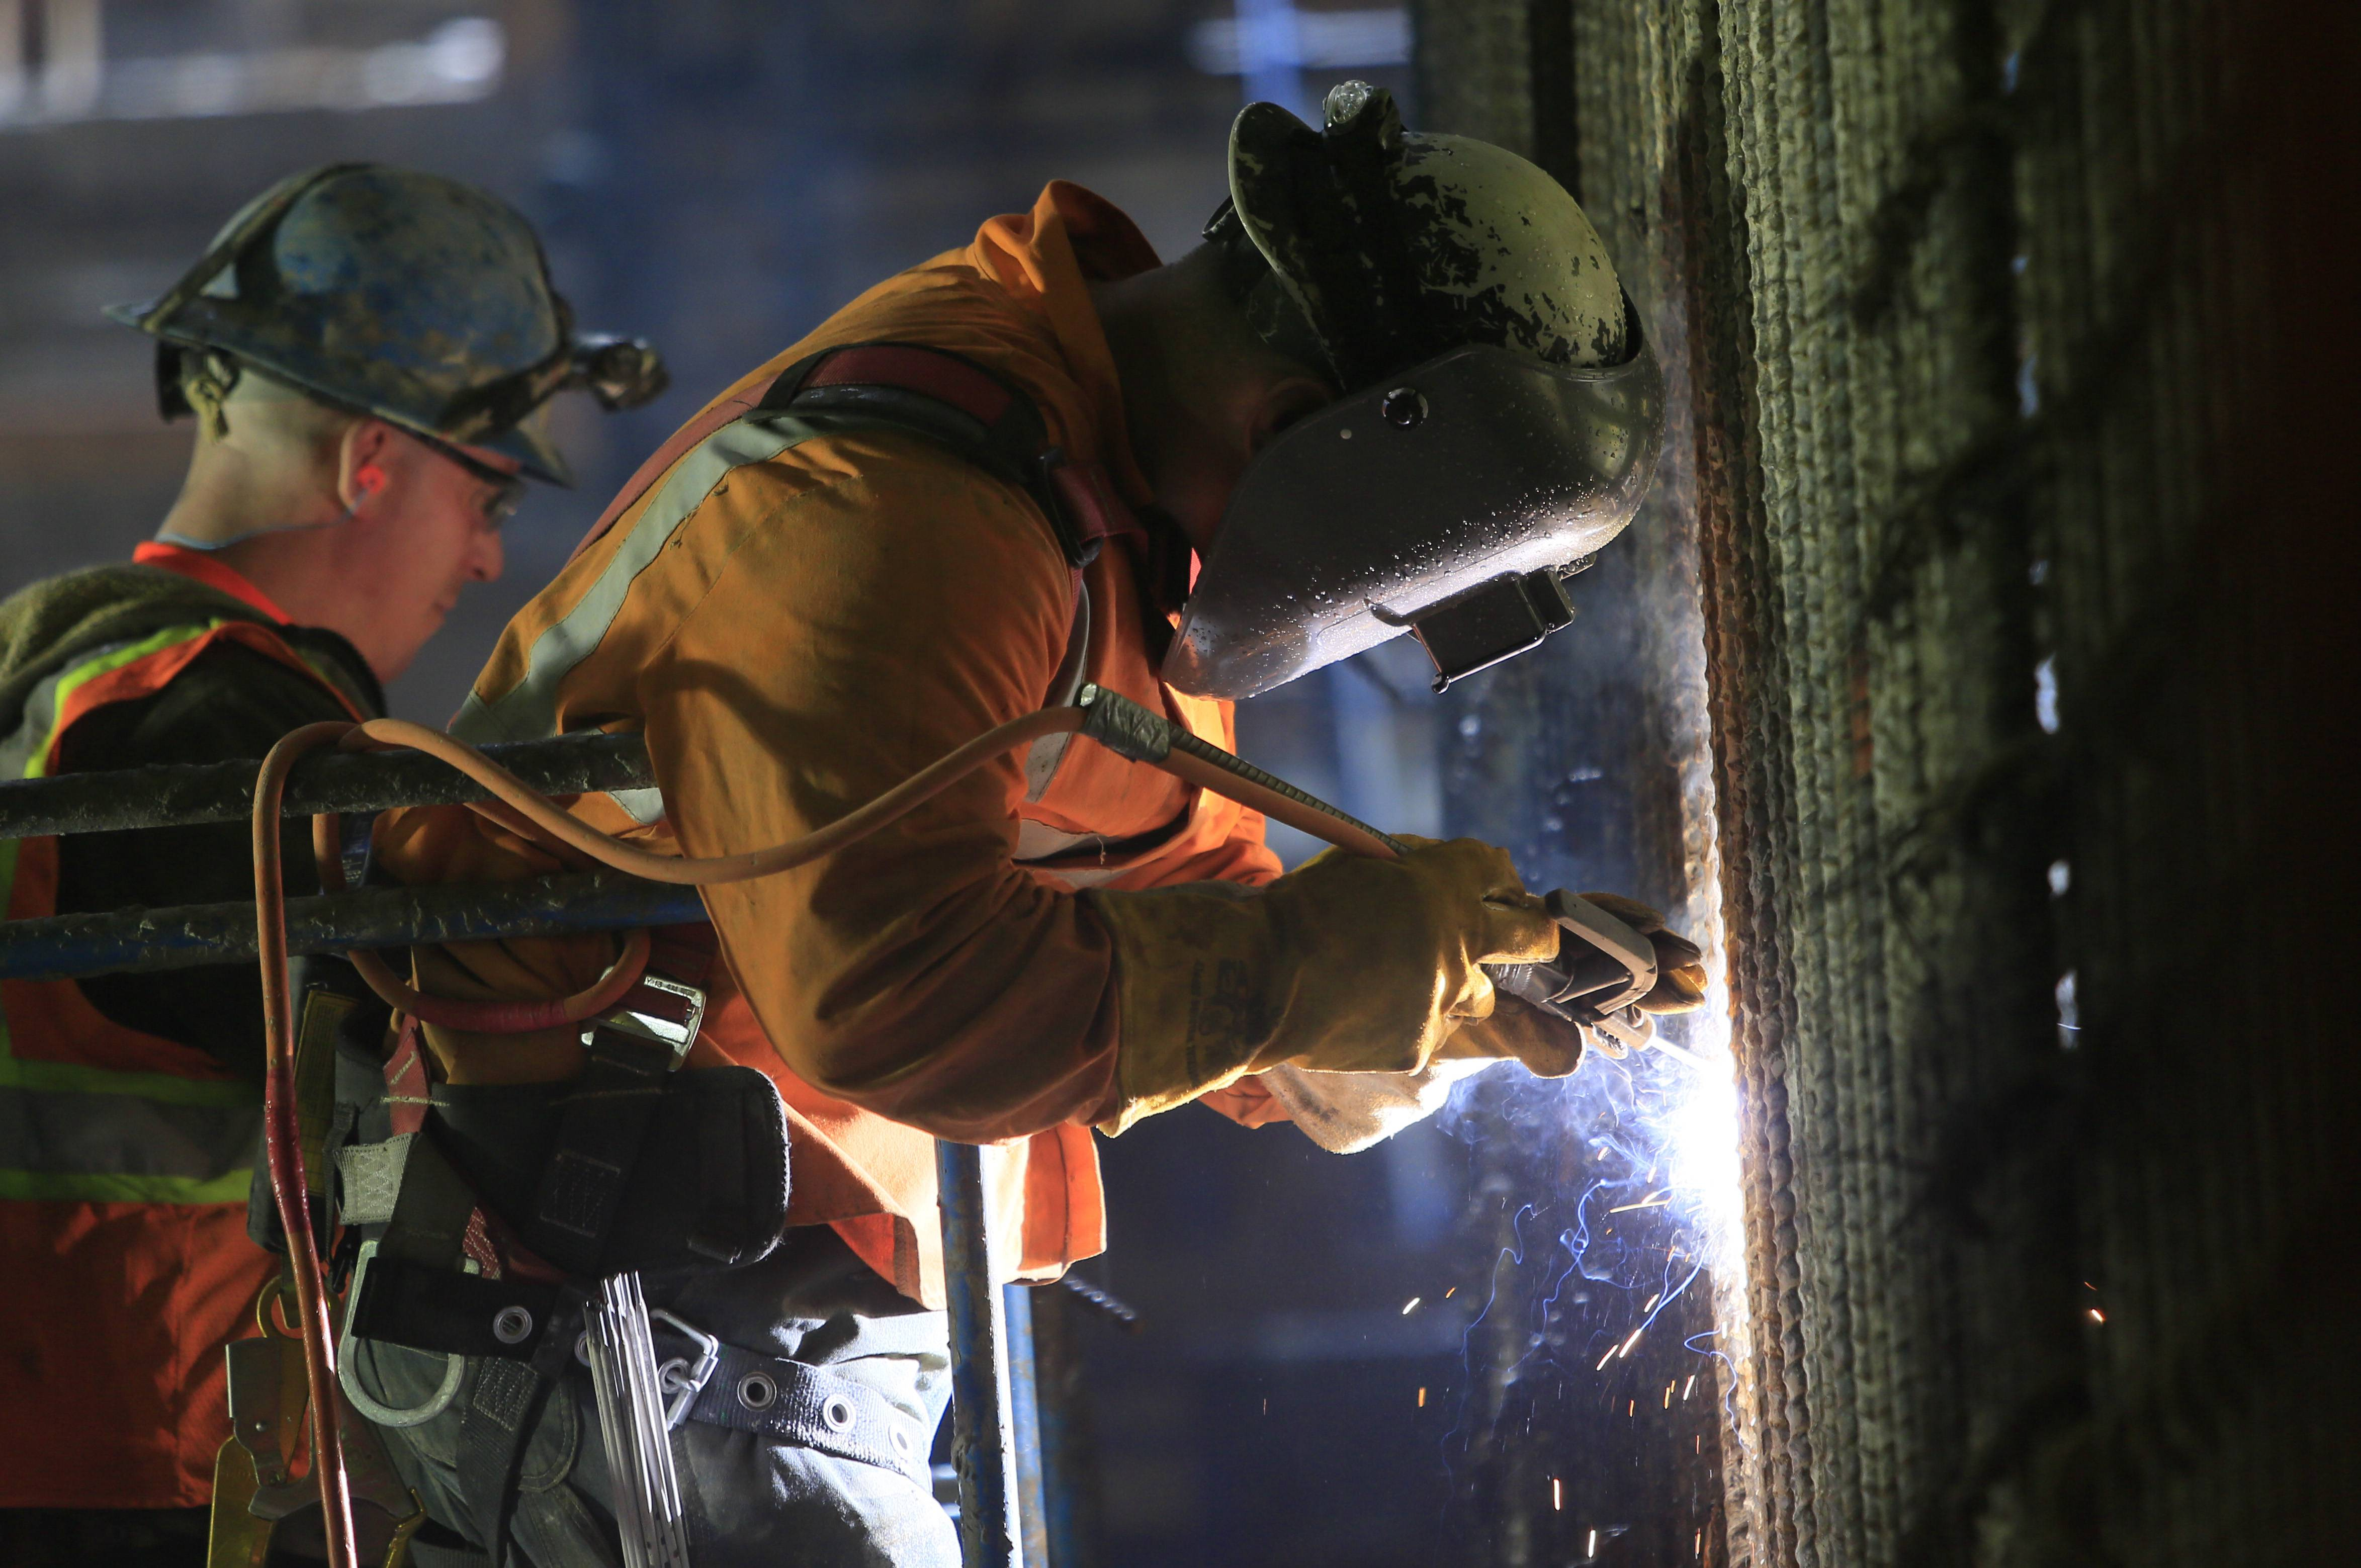 Welders connect iron support bars during construction inside the cavern of the Second Avenue subway tunnel at 86th Street, in New York. U.S. construction spending posted modest gains in April, driven by an uptick in home building and government construction that lifted total activity to the highest level in five years.